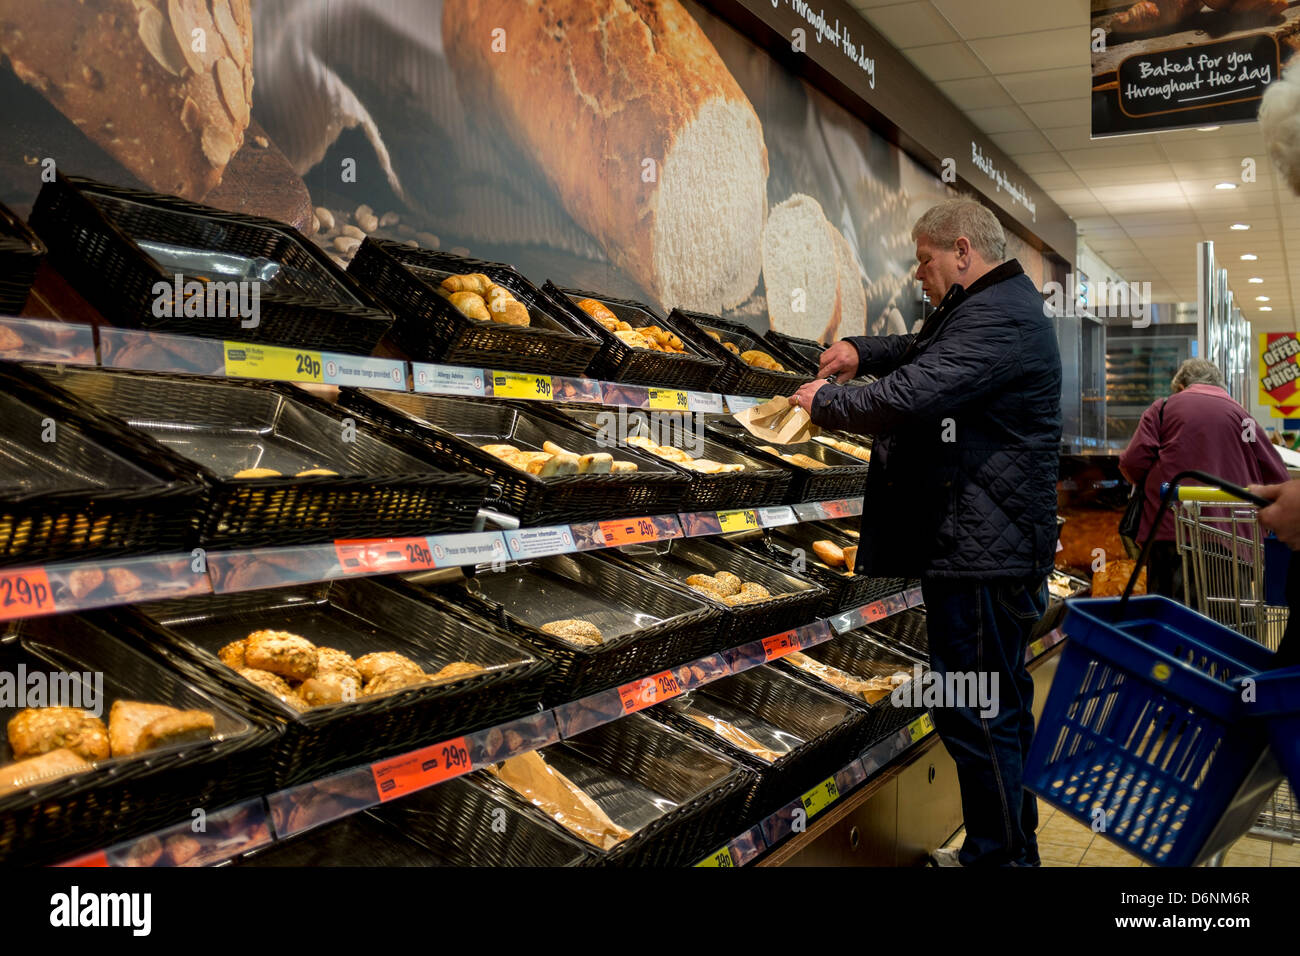 A man choosing freshly baked bread and other items from the bakery display at Lidls supermarket, Aberystwyth UK - Stock Image